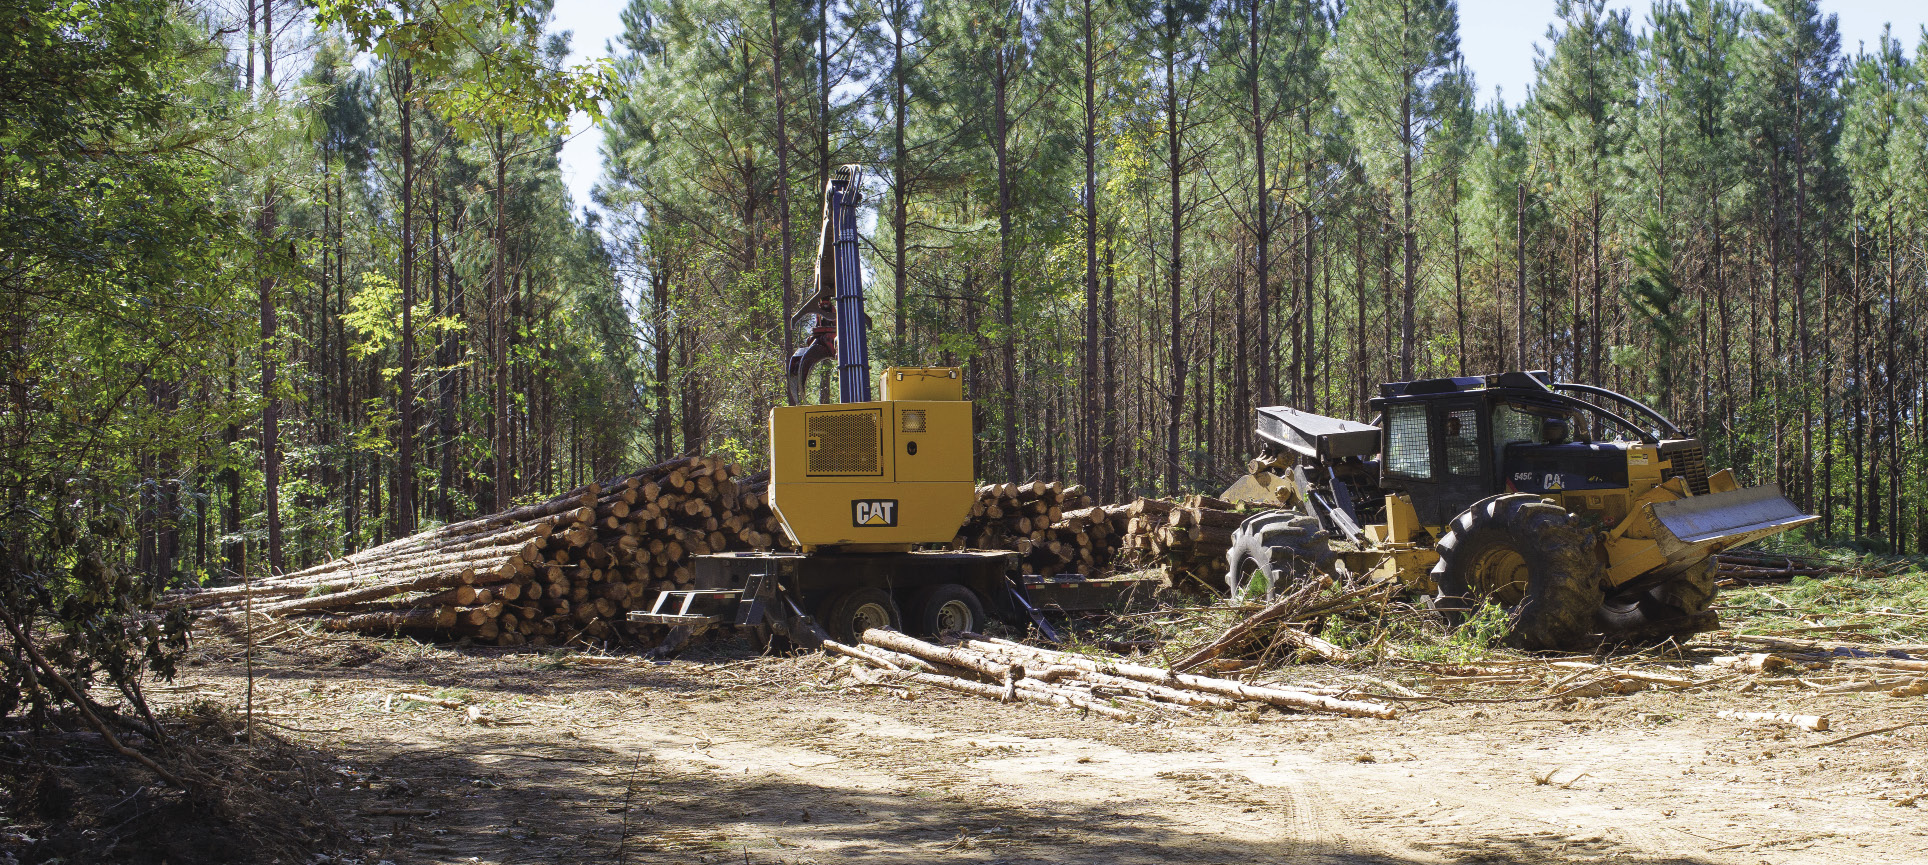 logging operation with equipment and stacked logs.